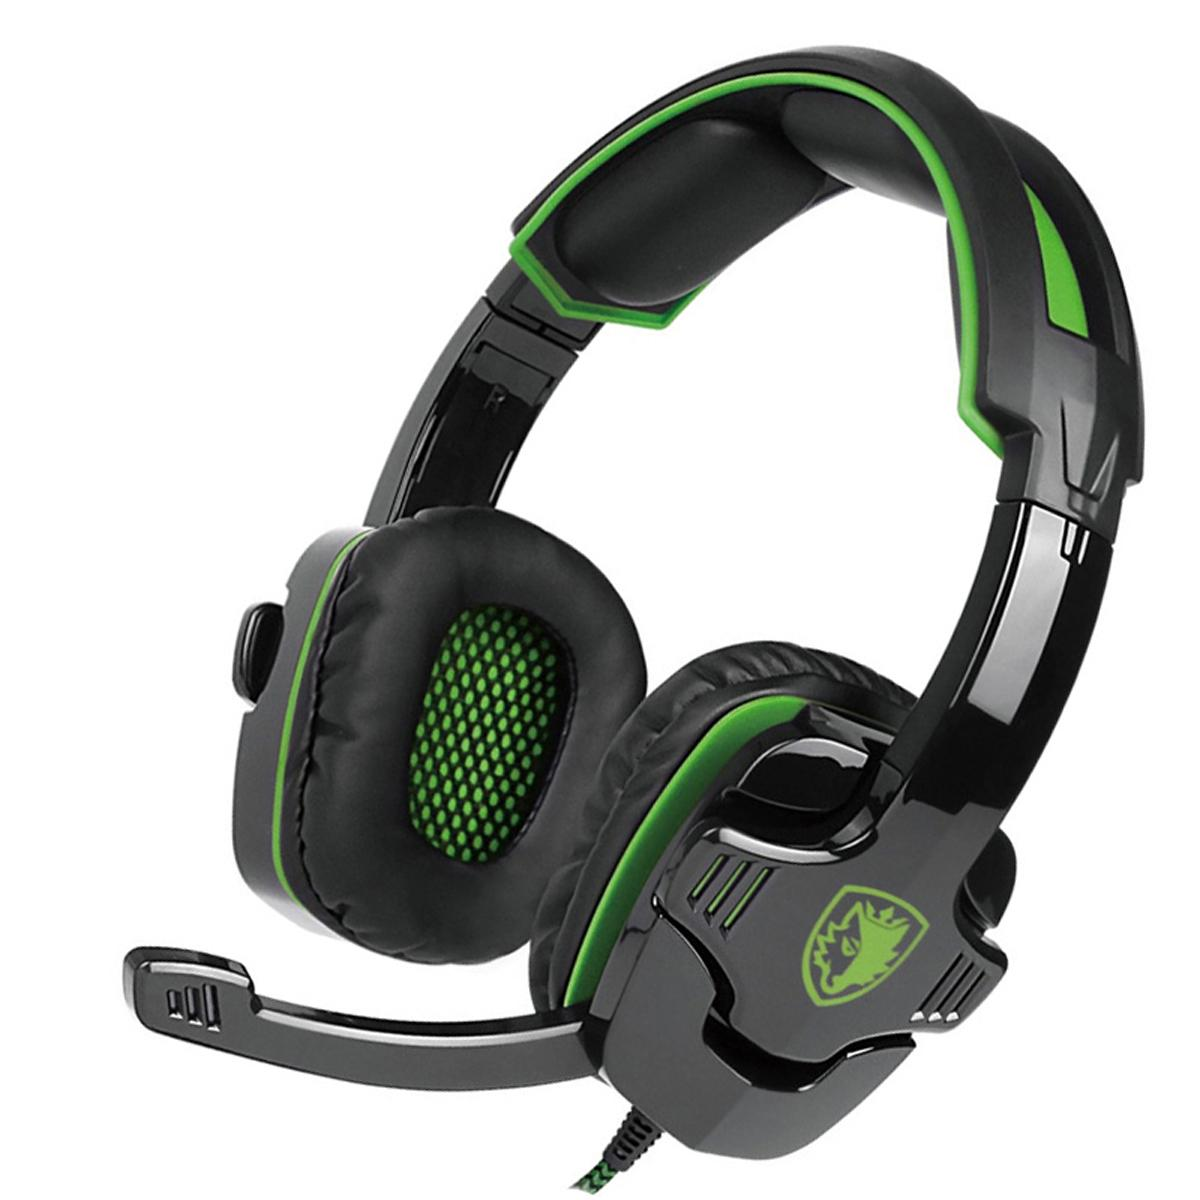 SADES SA-930 Gaming Headsets